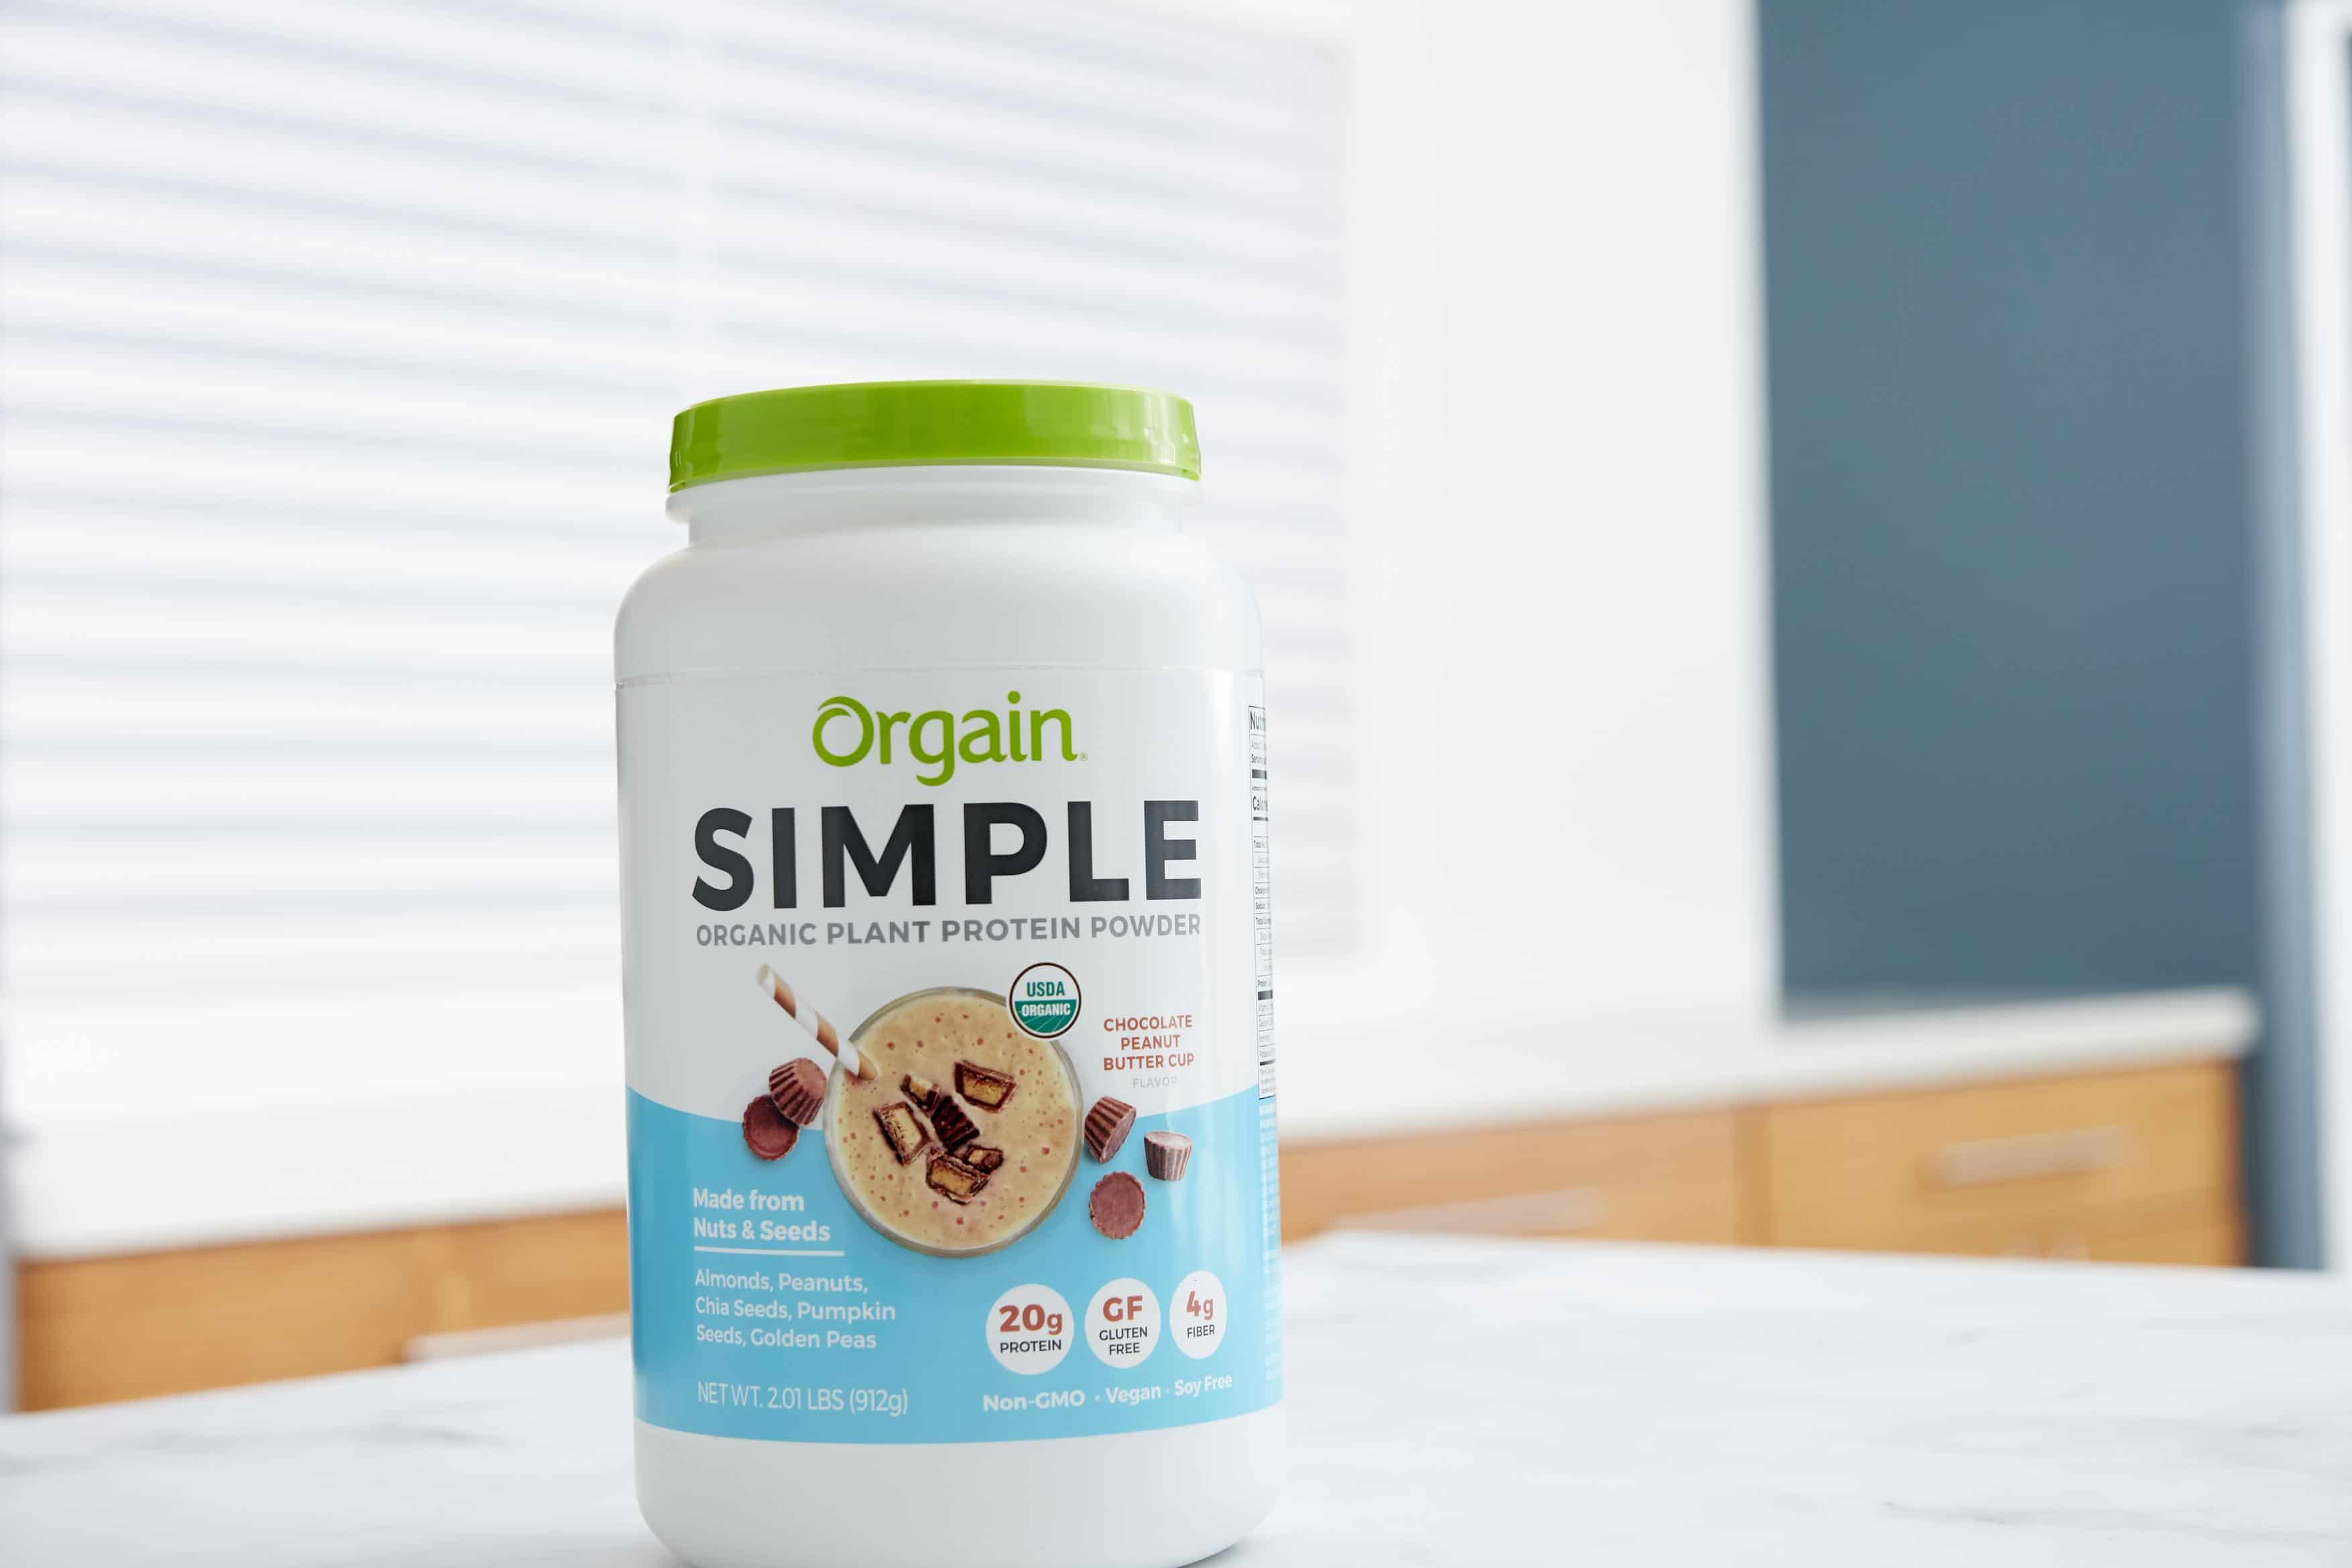 Orgain Launches Simple Organic Plant Based Protein Powder in Chocolate Peanut Butter Cup at Costco